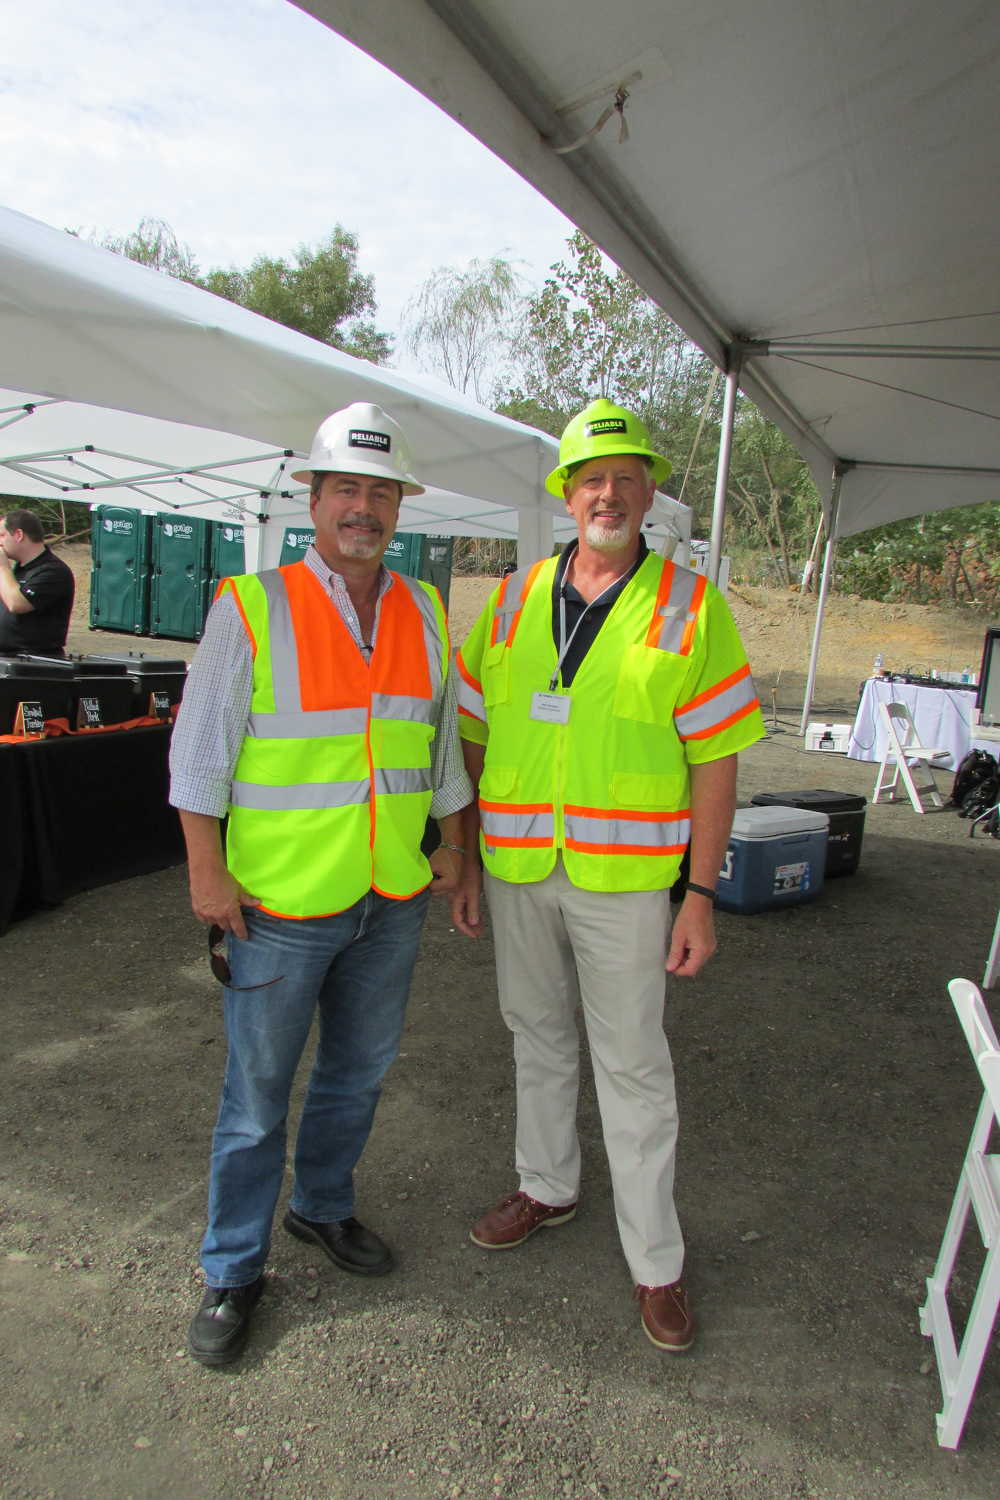 Reliable Contracting's John Baldwin Jr. (L), vice president of the grading and utilities division, and Rob Scrivener, vice president of asphalt operations, were happy to be hosting the site demonstration for Terex Finlay in Gambrills, Md.